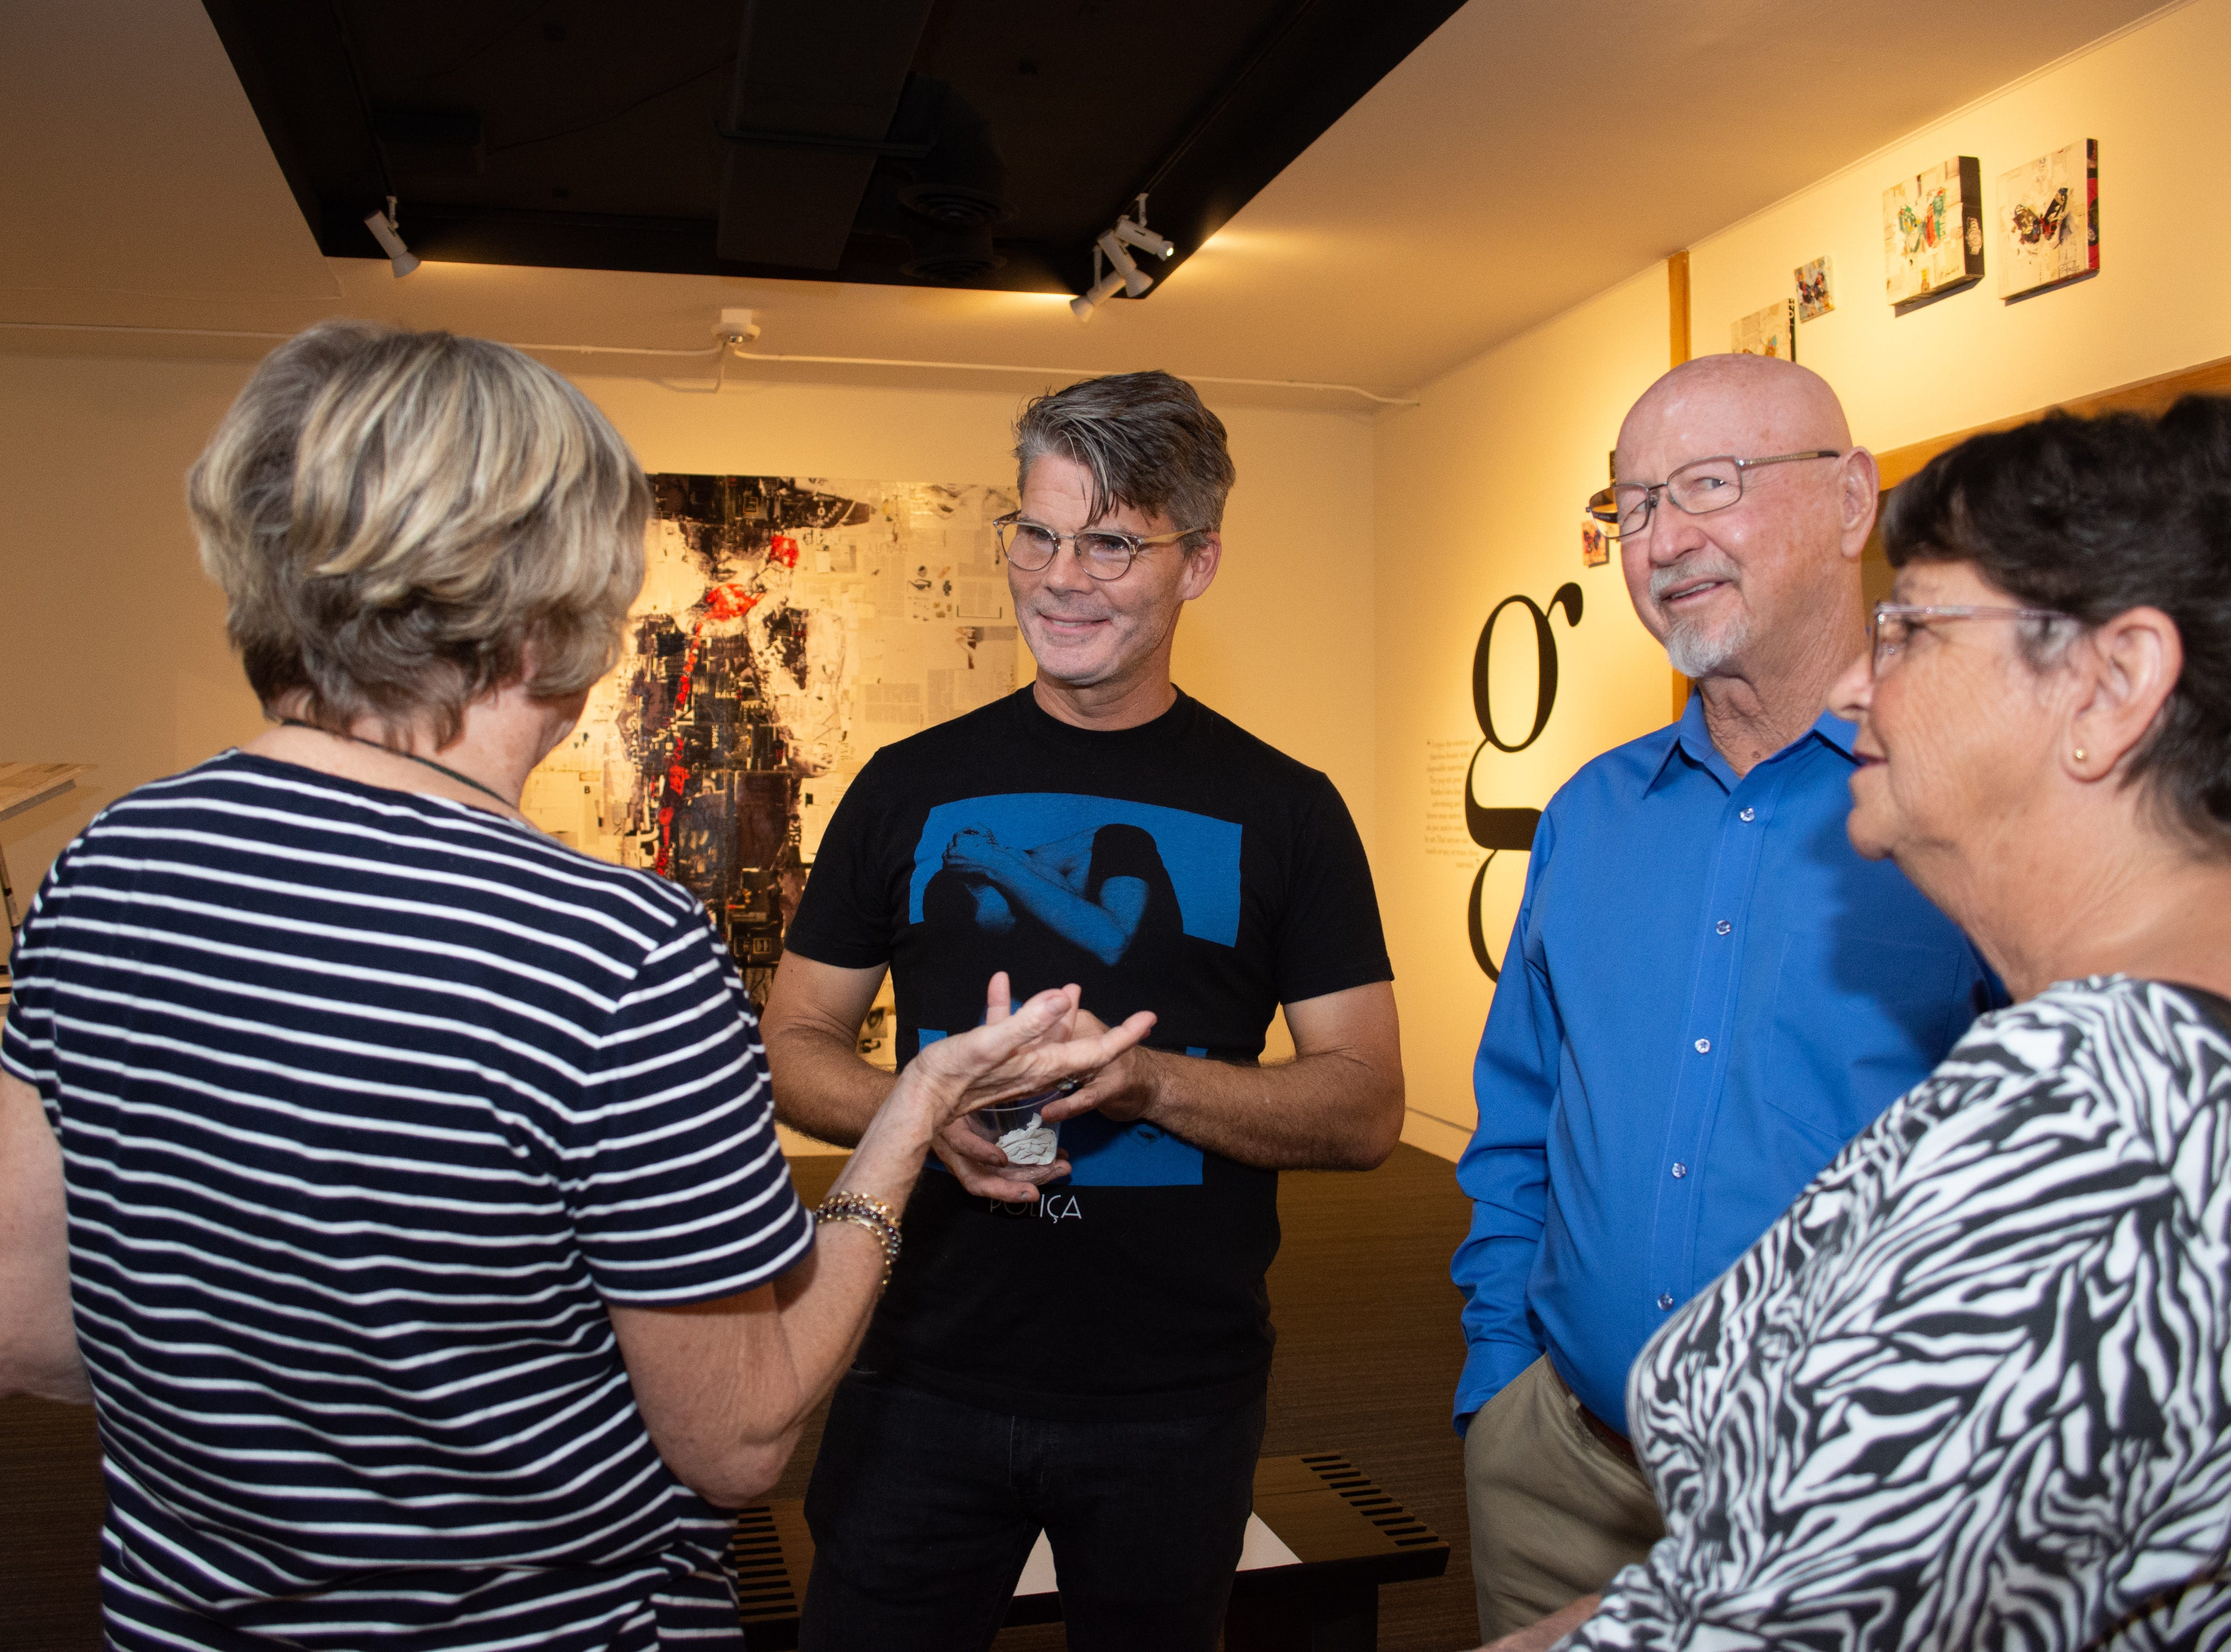 Photos from the Artworks Sponsor Party at Foosaner Art Museum which featured local artist Derek Gores' work.